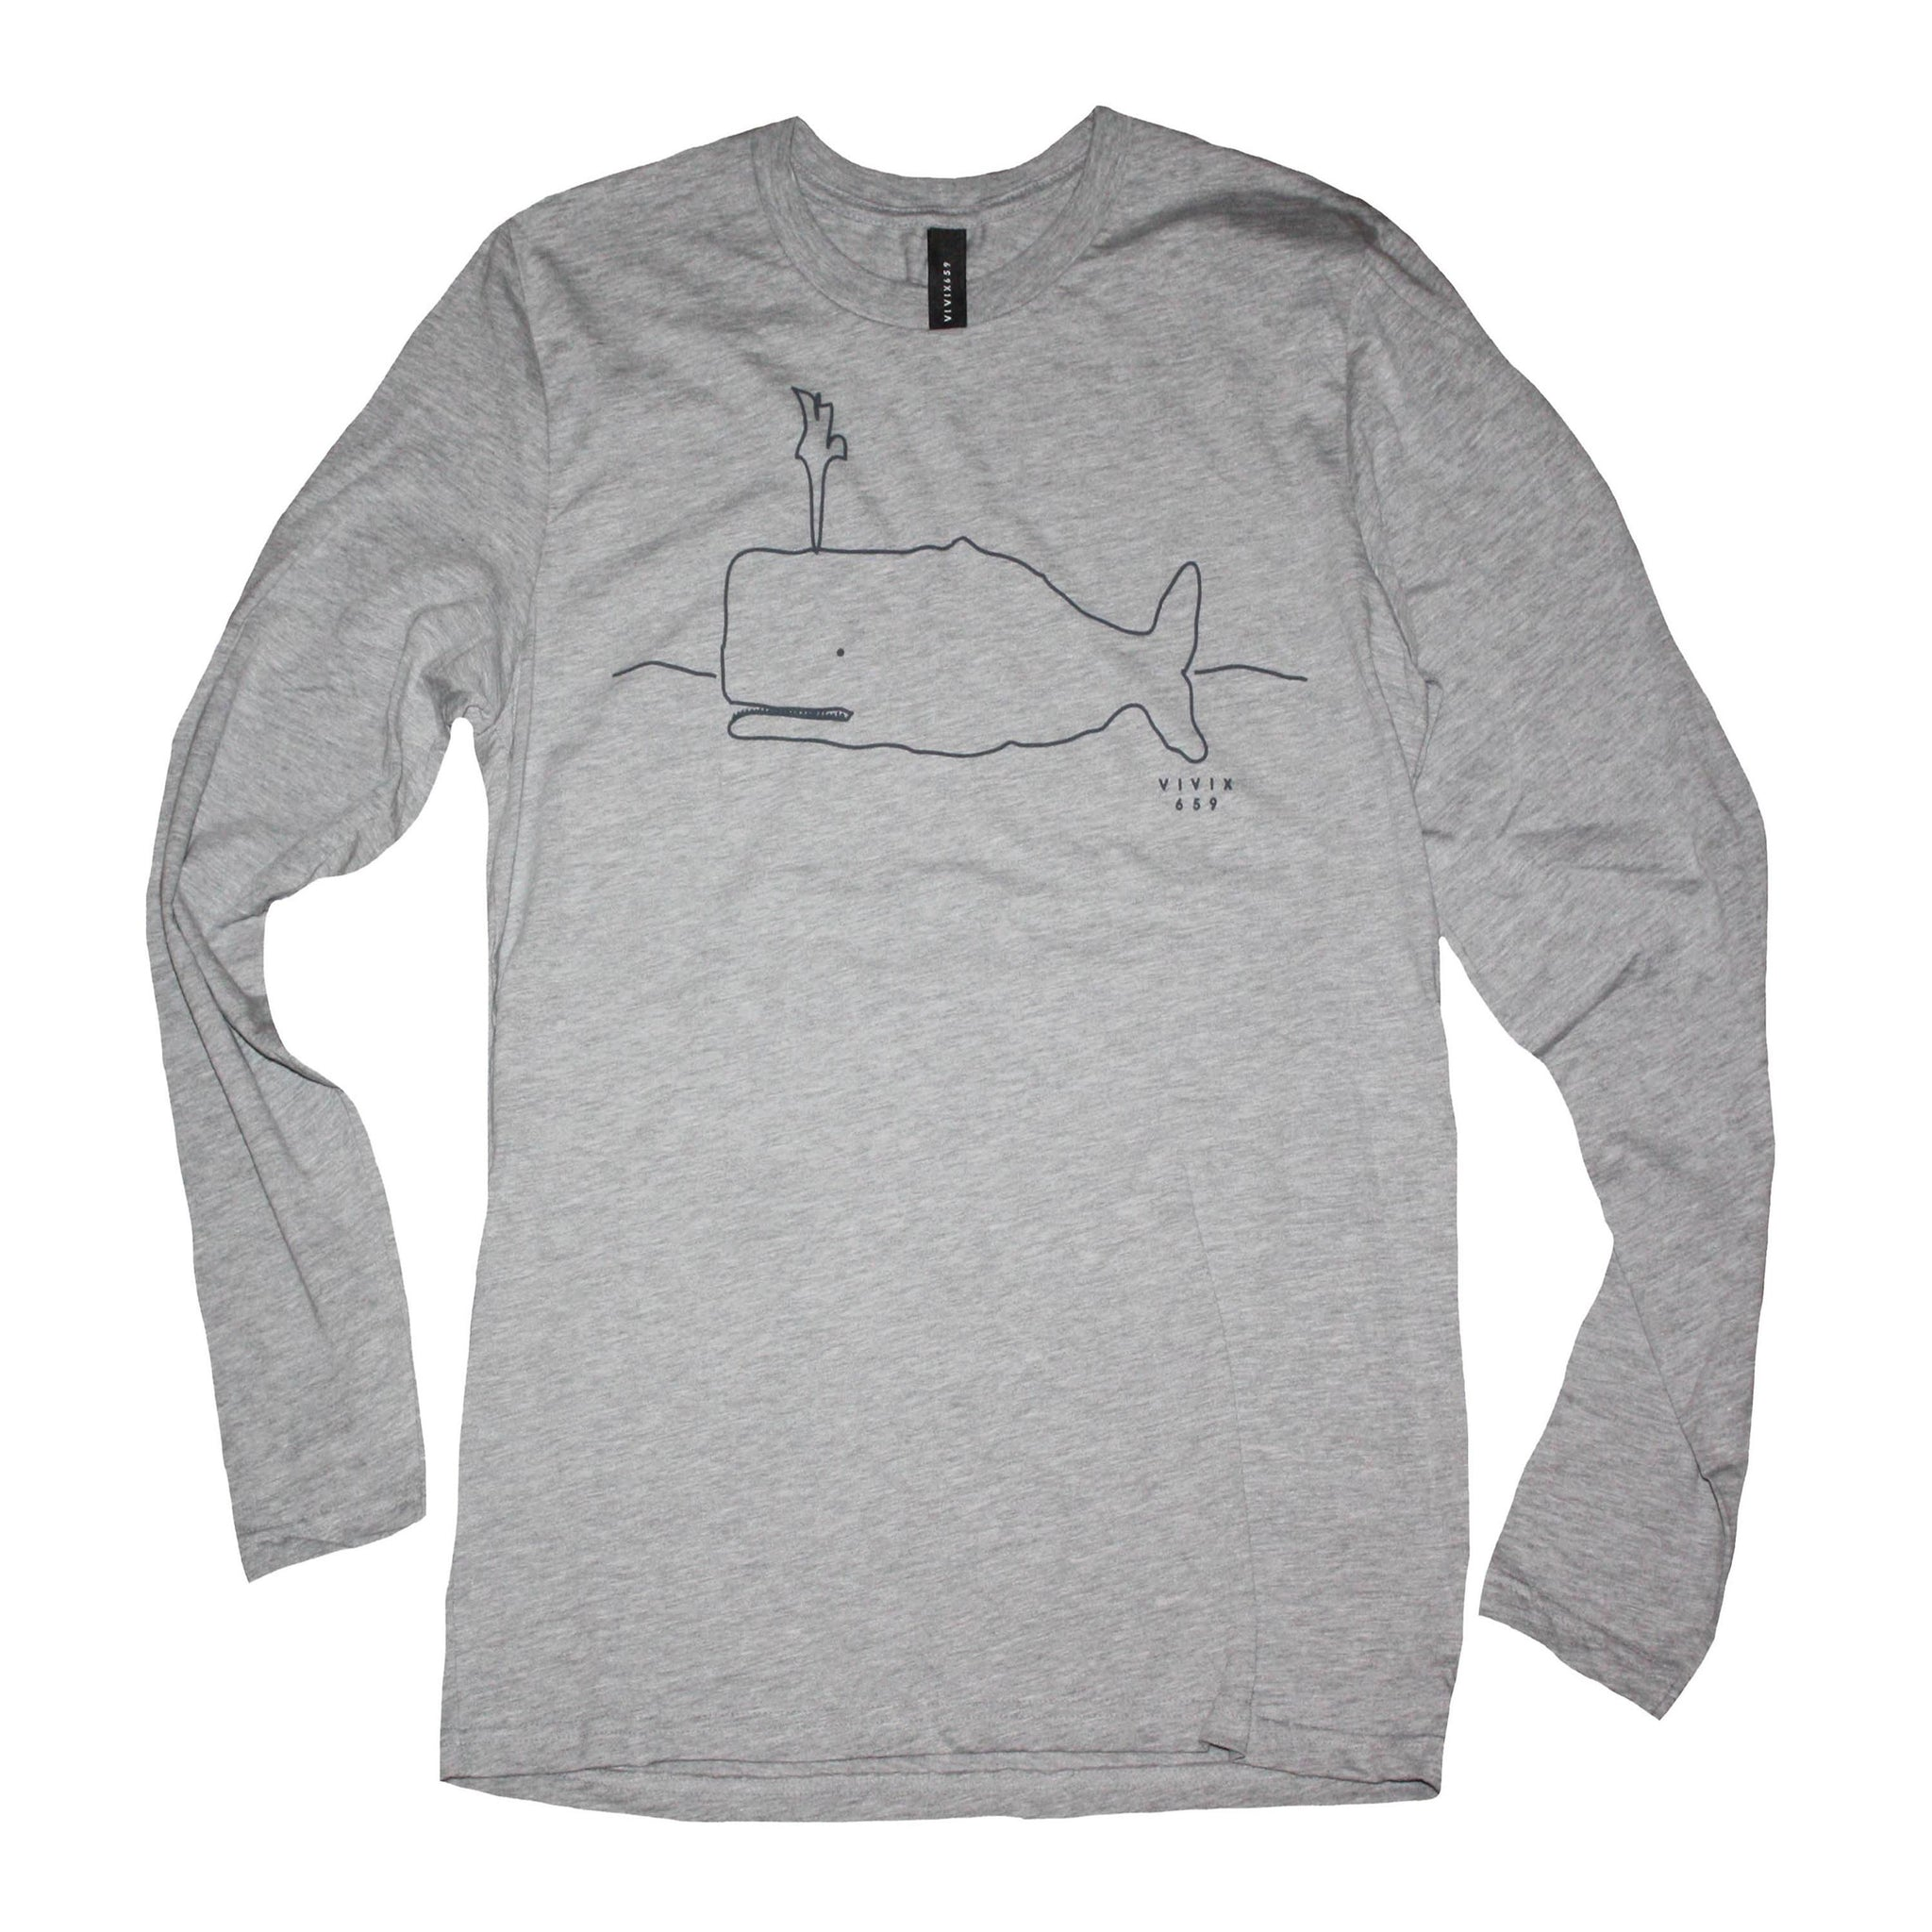 Hand drawn whale long sleeve t shirt